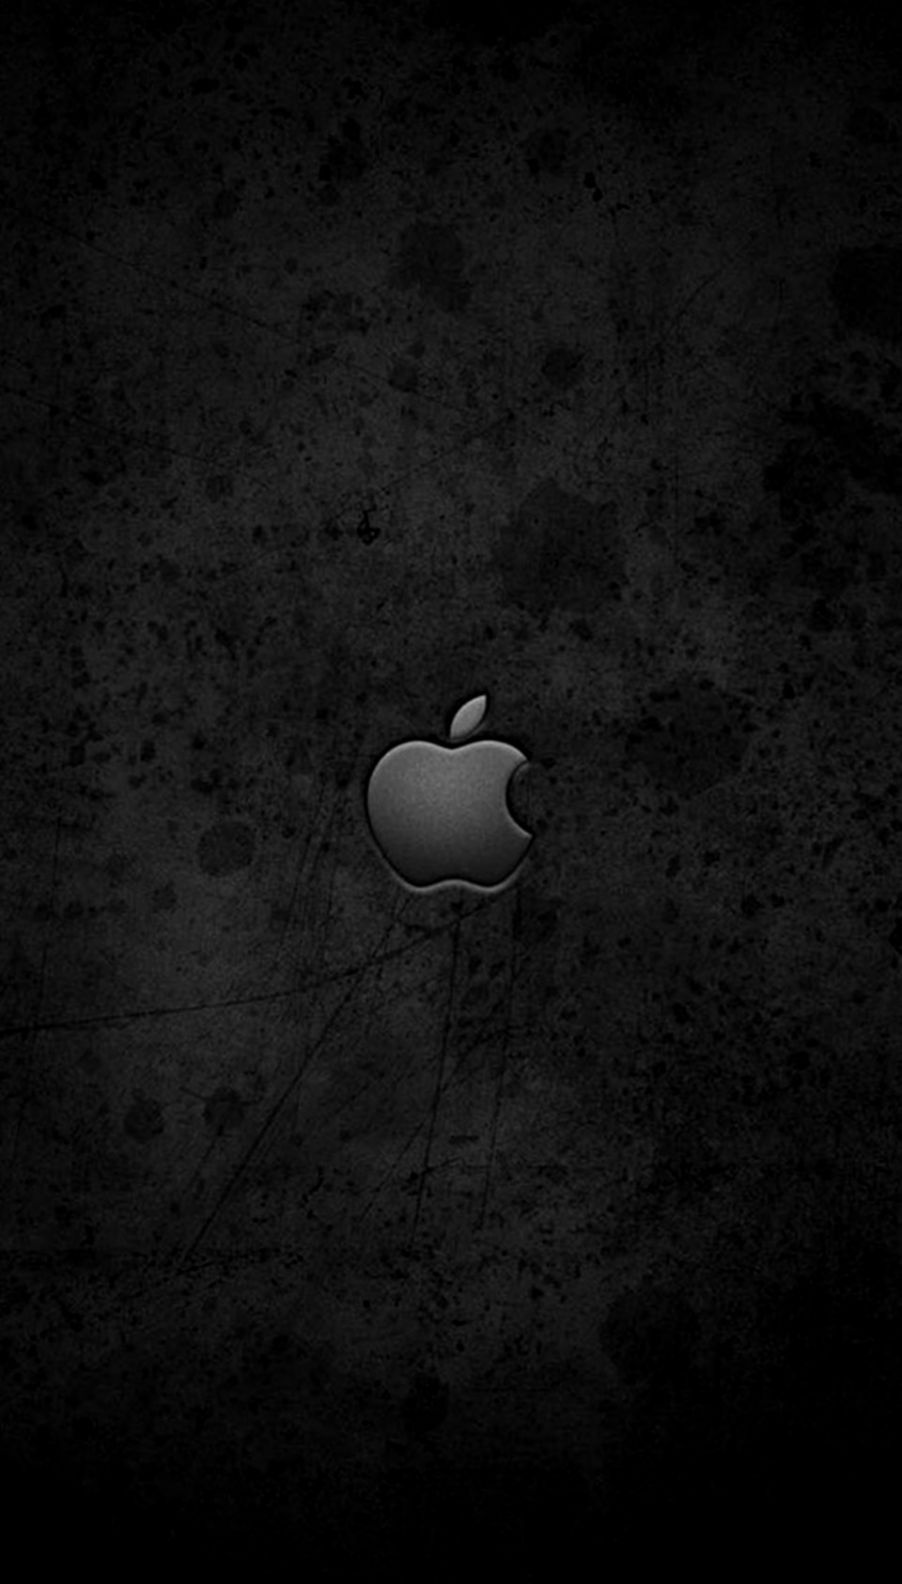 Iphone Wallpaper Size Black Wallpaper Iphone Apple Logo Wallpaper Apple Logo Wallpaper Iphone